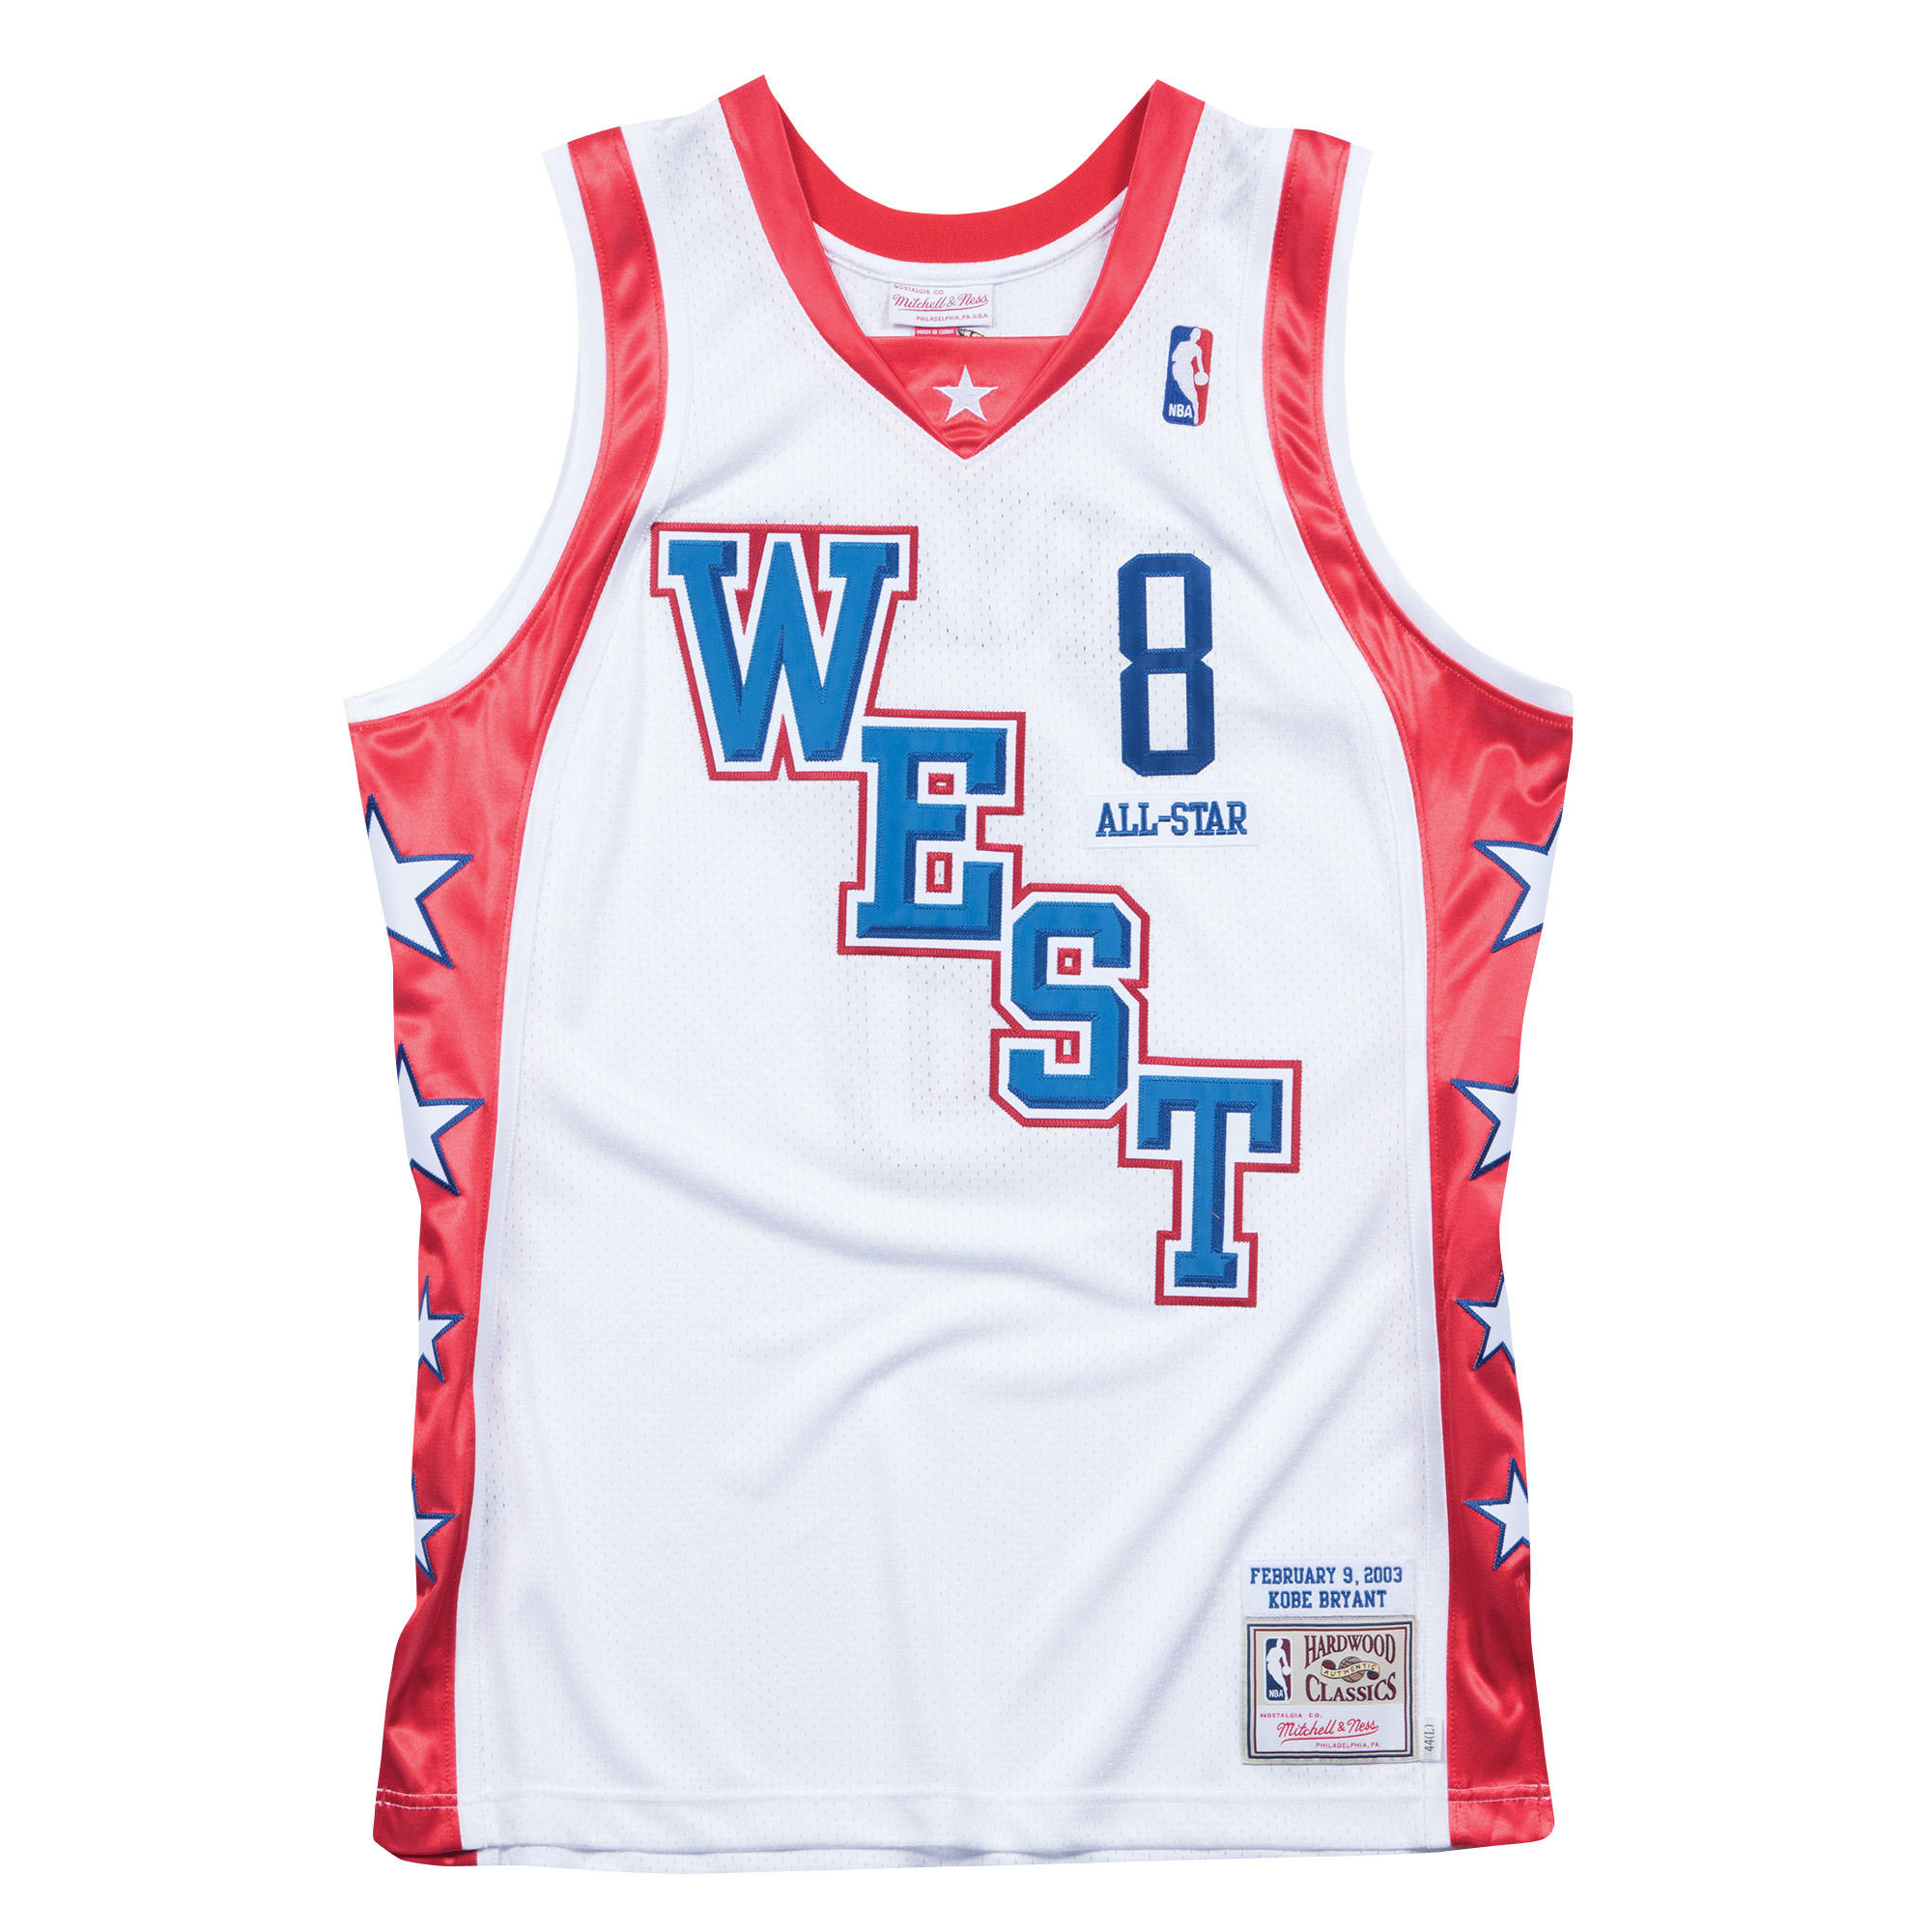 65c1d27d0 Kobe Bryant 2004 West Authentic Jersey NBA All-Star